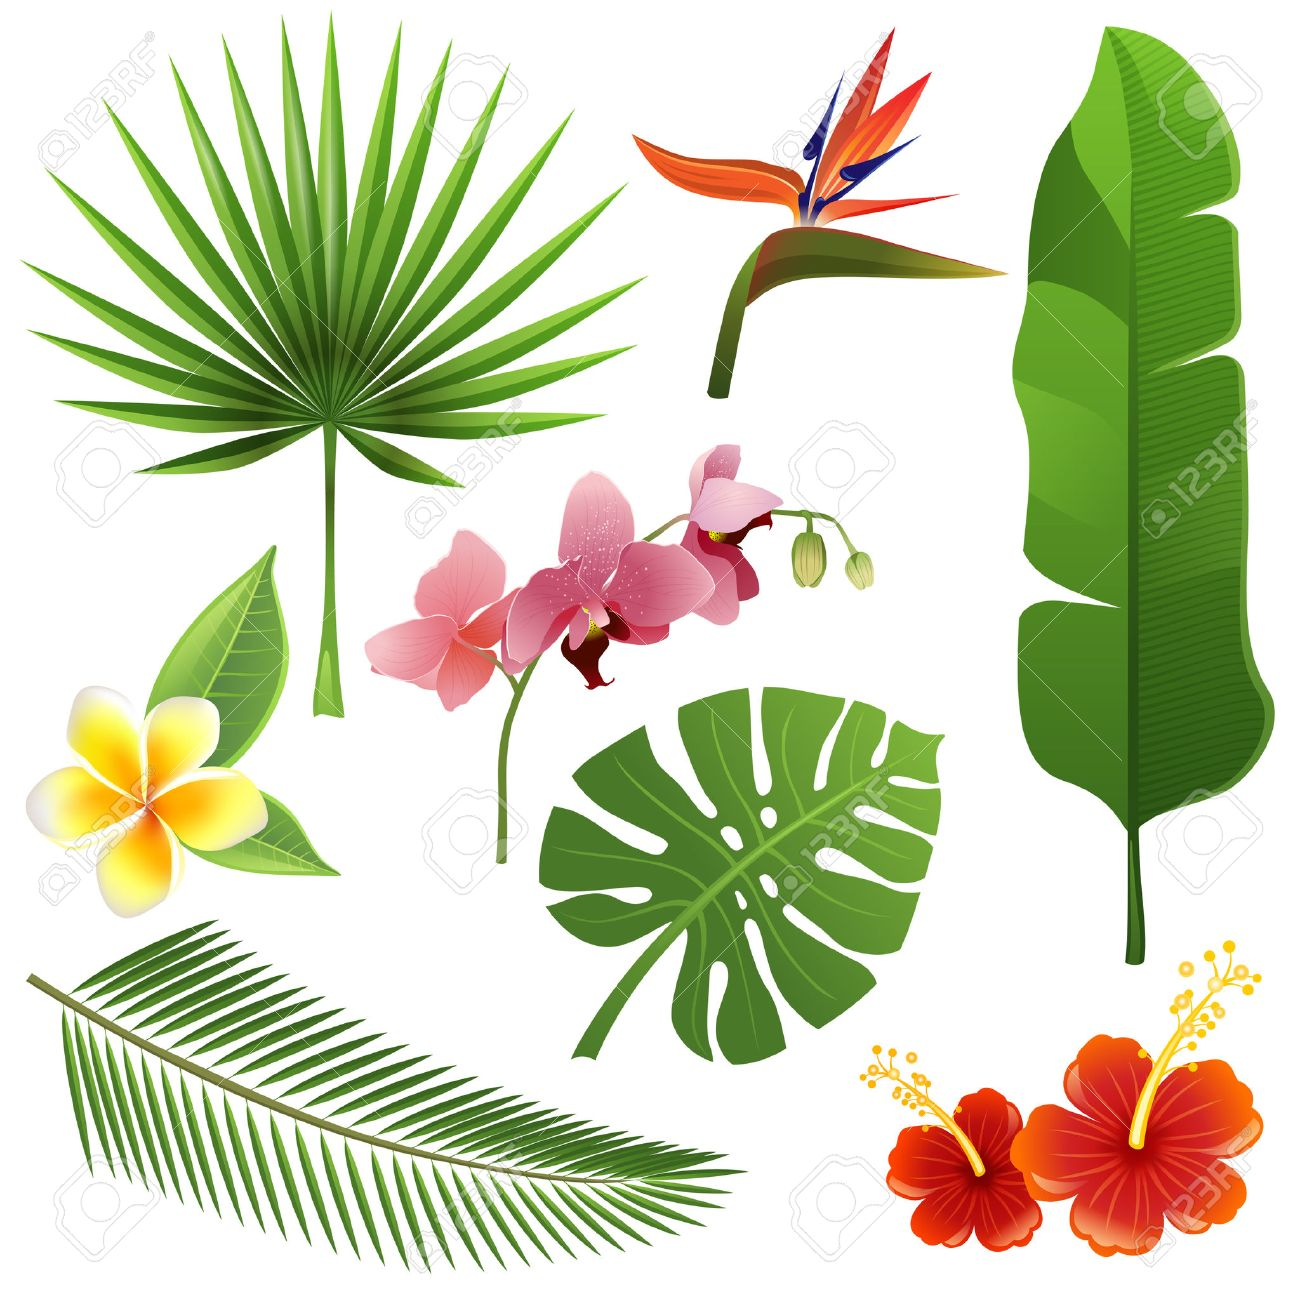 Set Of Tropical Leaves And Flowers Royalty Free Cliparts Vectors And Stock Illustration Image 22810833 Tropical flower leaves, tropic jungle plants and exotic floral branch vector. set of tropical leaves and flowers